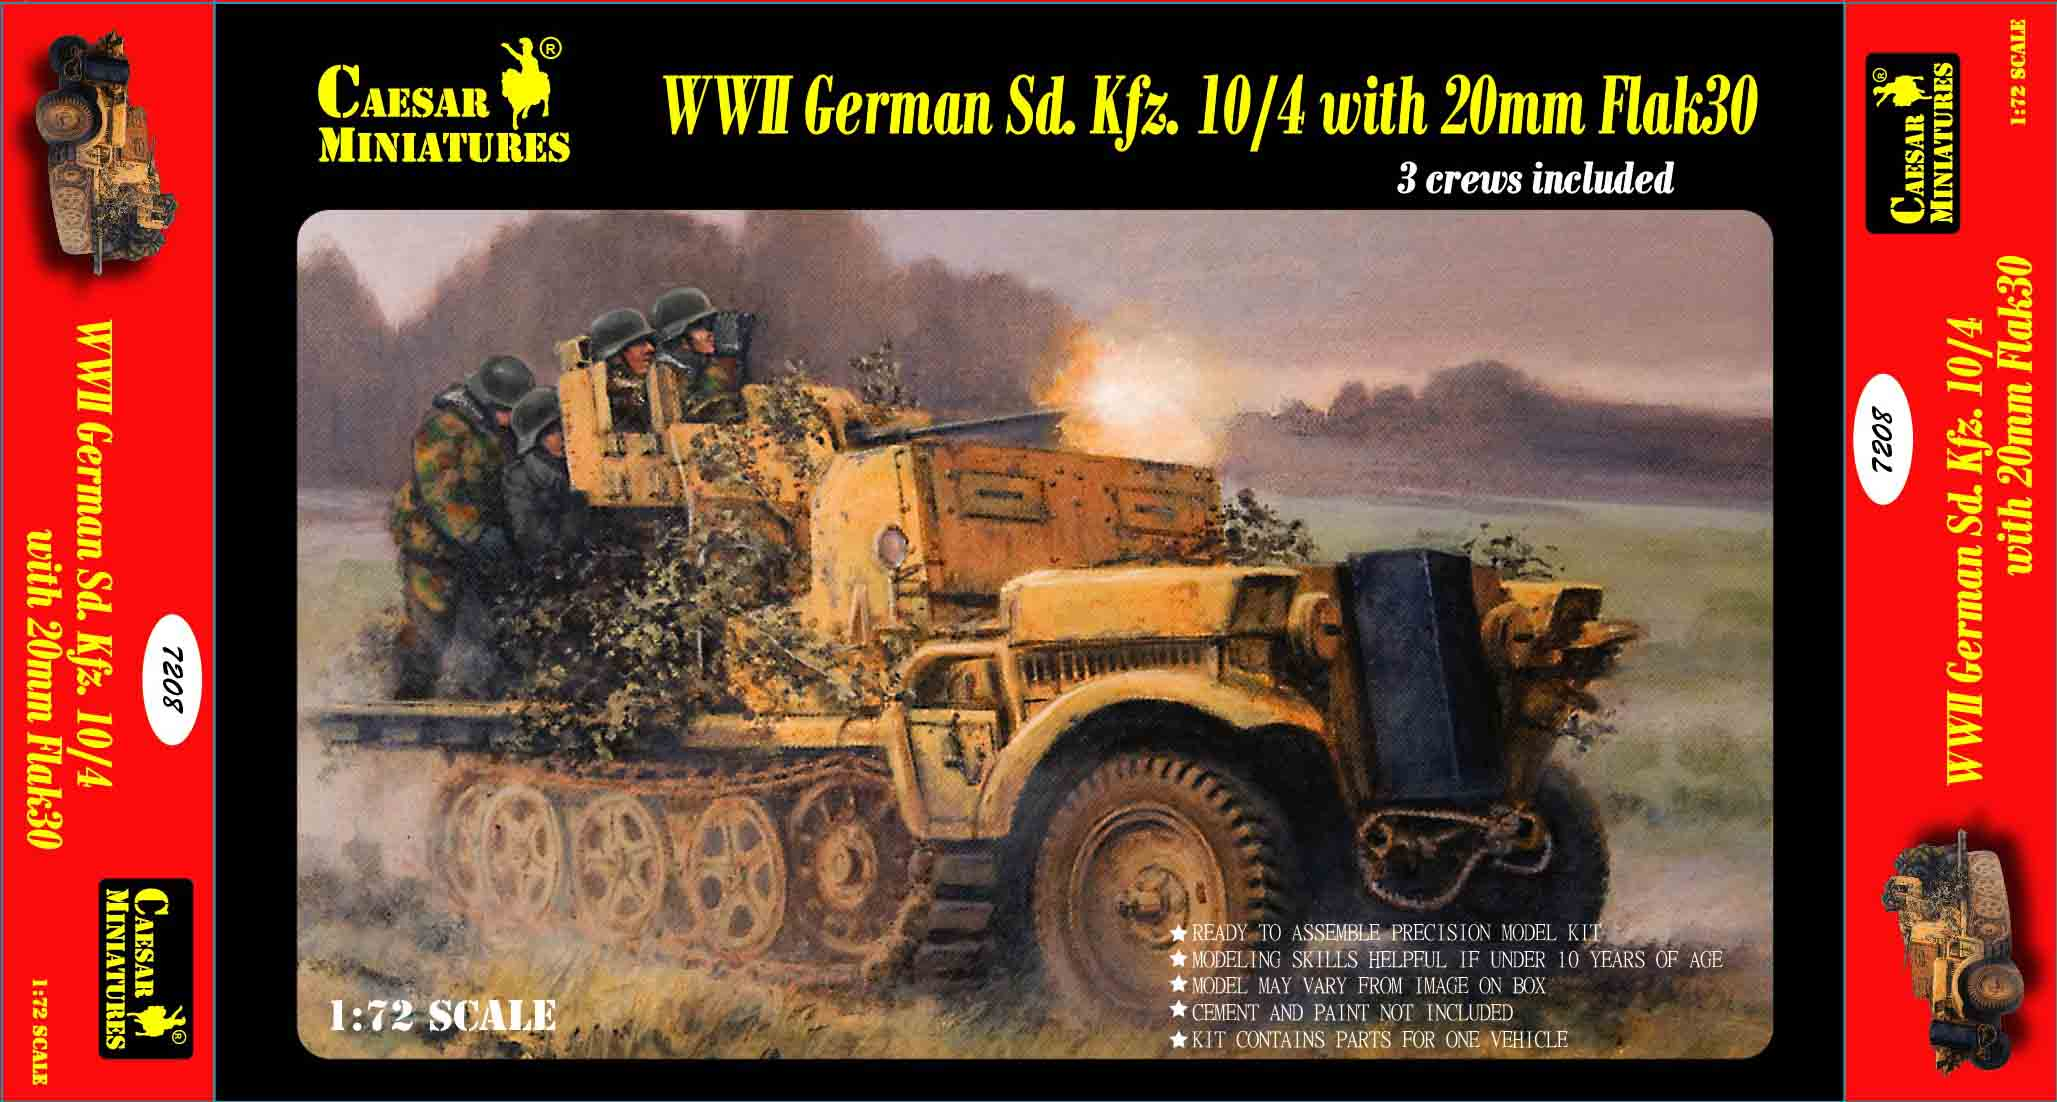 Military Series: WWII German Sd. Kfz.10-4 with 20mm Flak 30